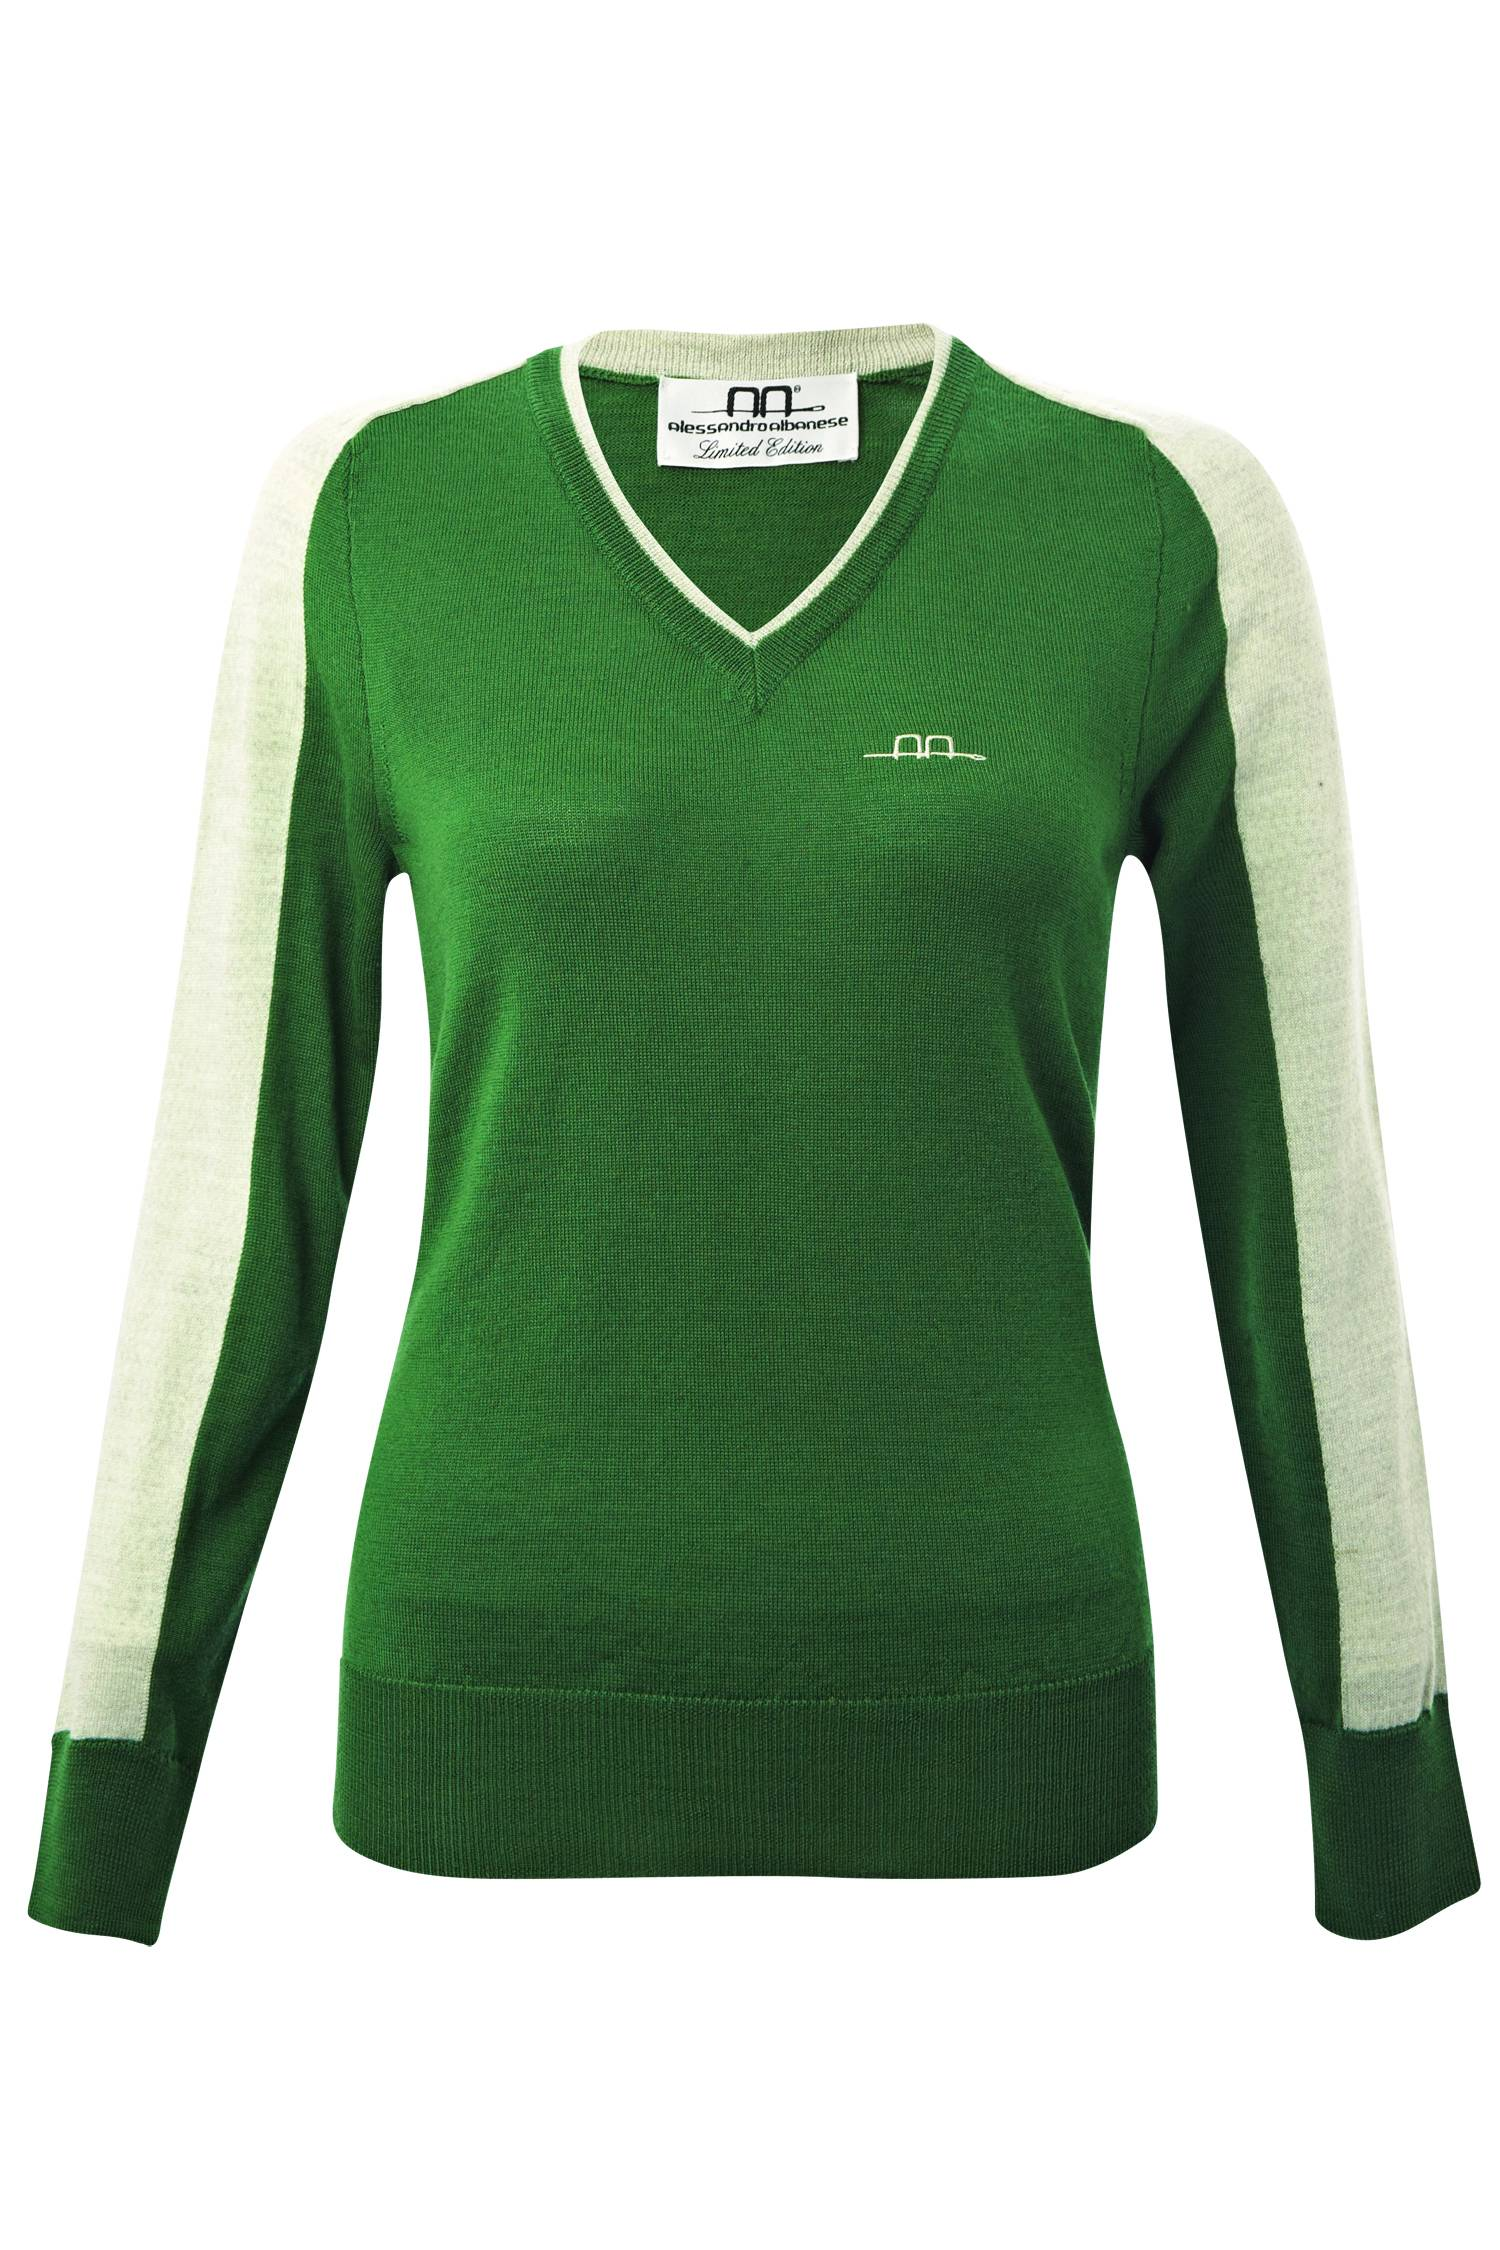 Alessandro Albanese Wien Ladies Knitted V Neck